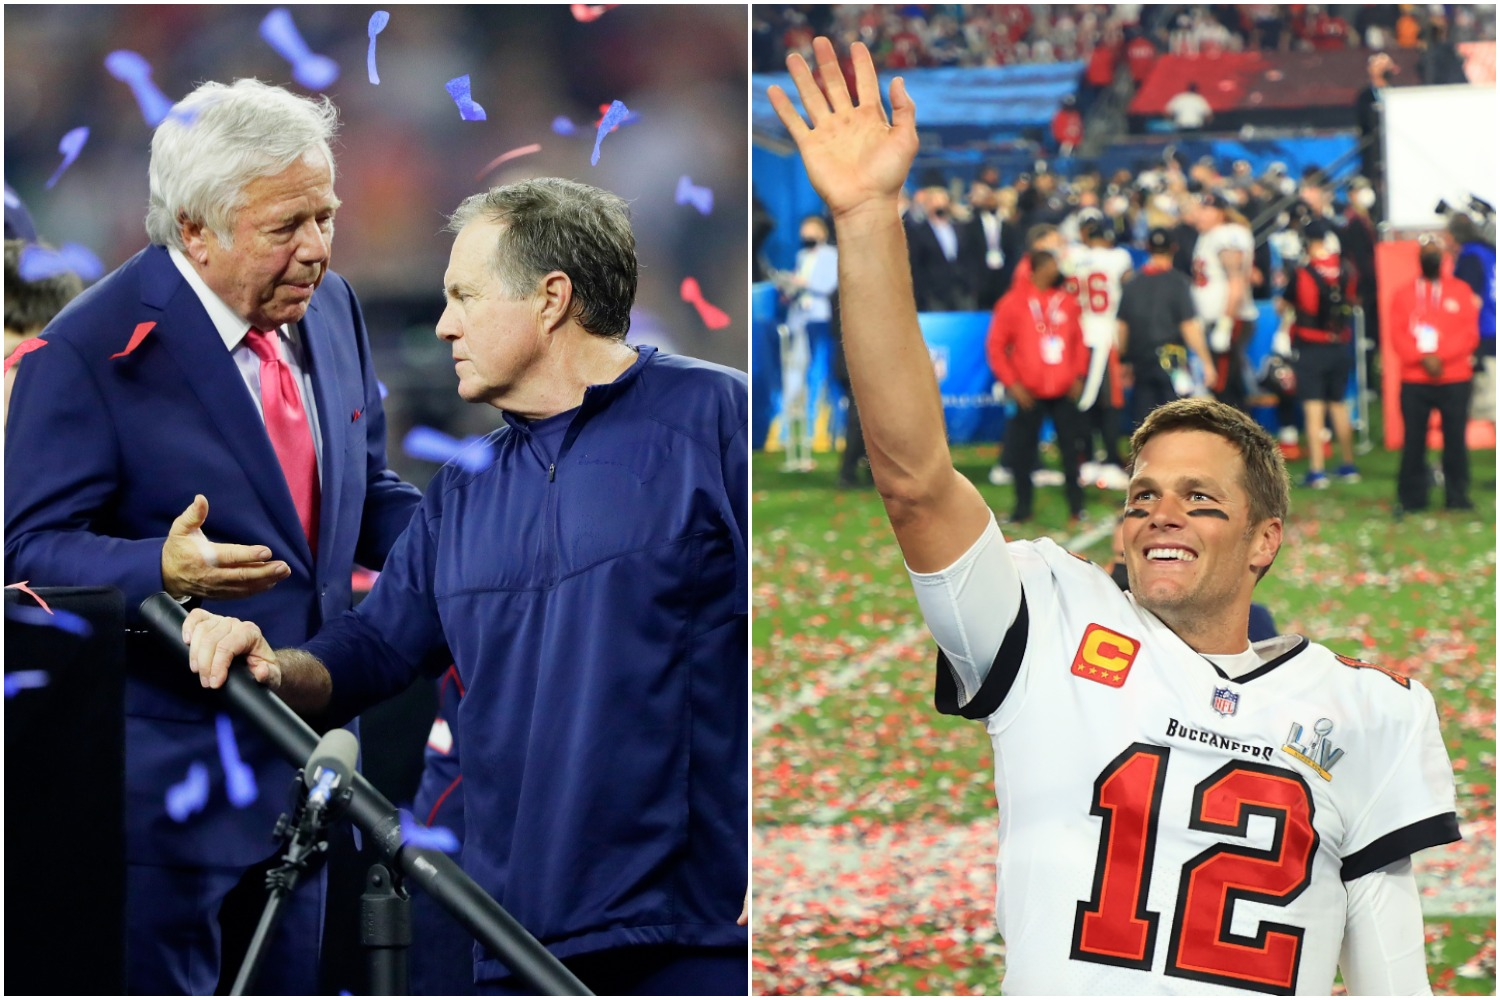 Patriots owner Robert Kraft talks to Bill Belichick after Super Bowl 51 as Tom Brady celebrates winning Super Bowl 55 with the Buccaneers.